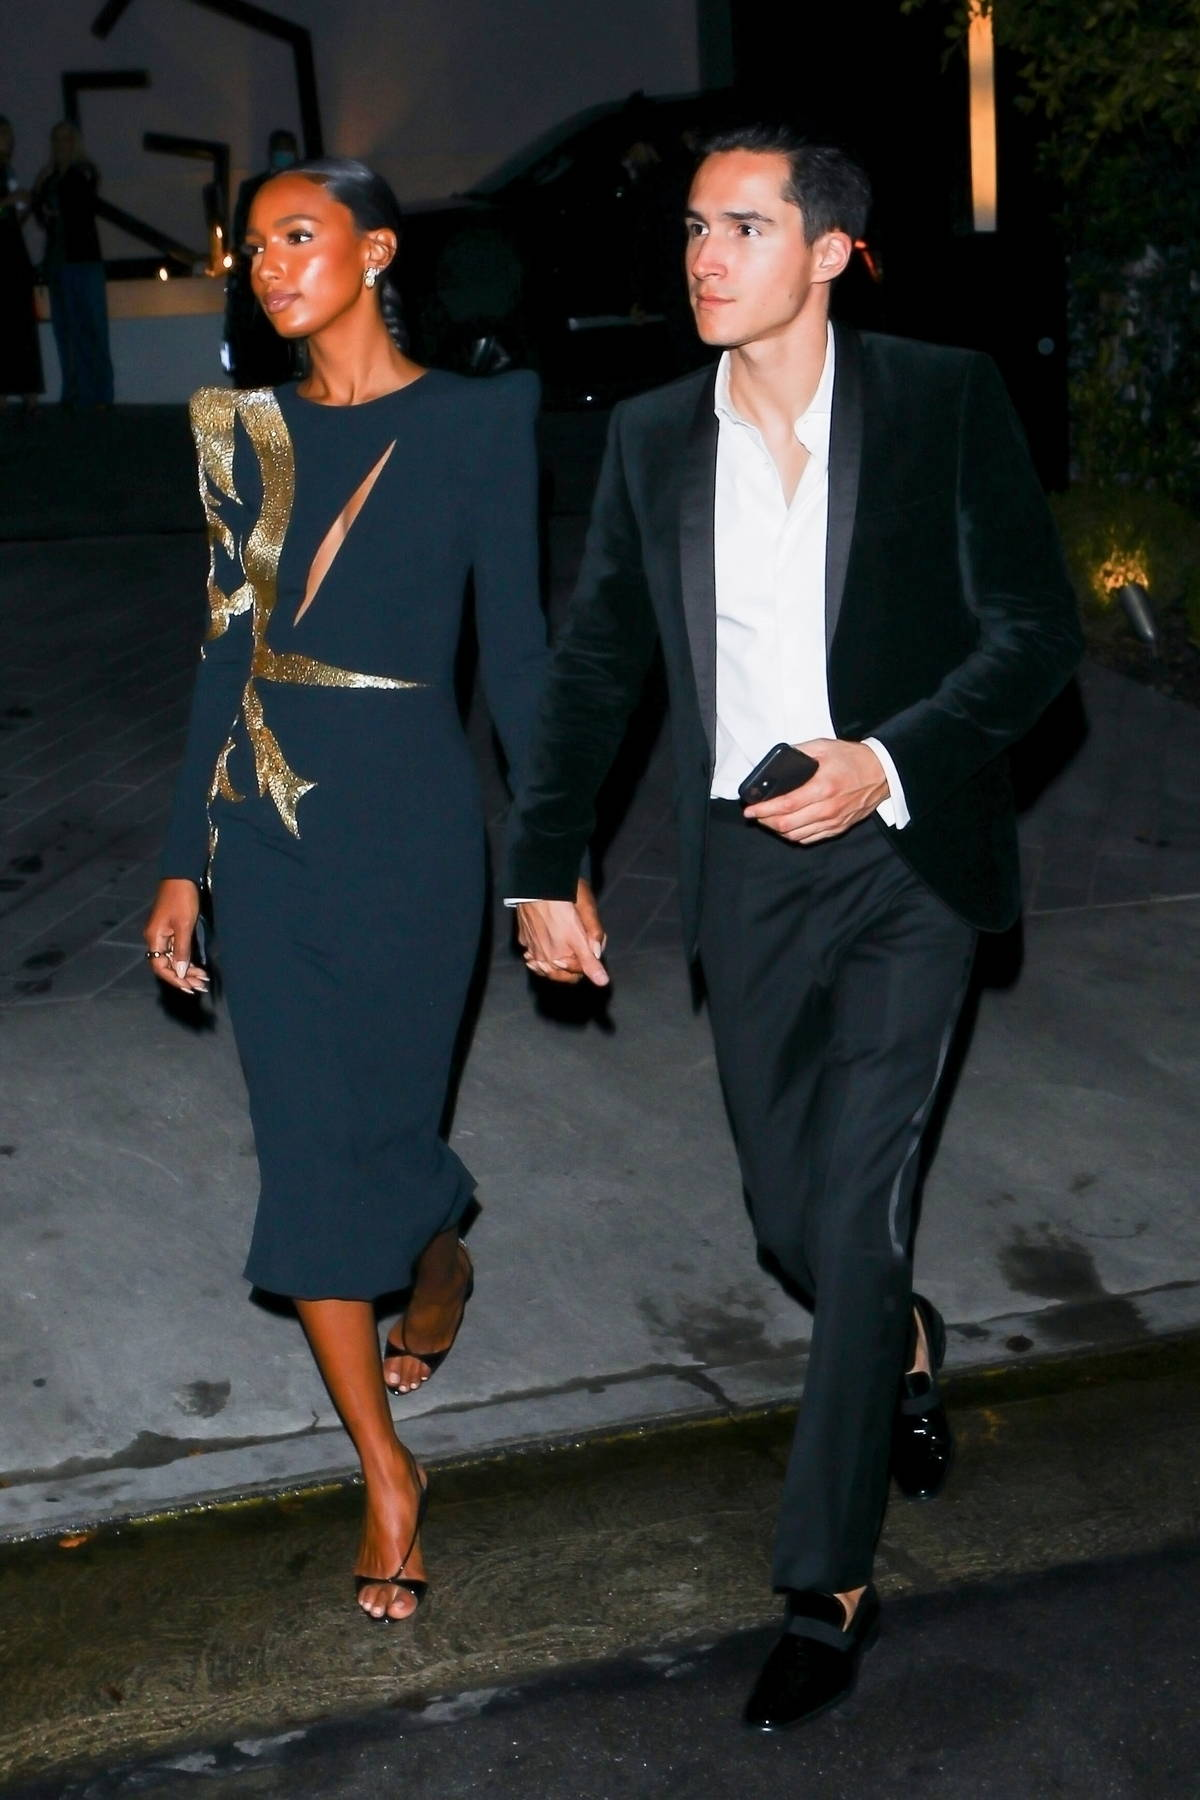 Jasmine Tookes and her fiancé Juan David Borrero seen leaving an Oscars afterparty in Bel Air, California